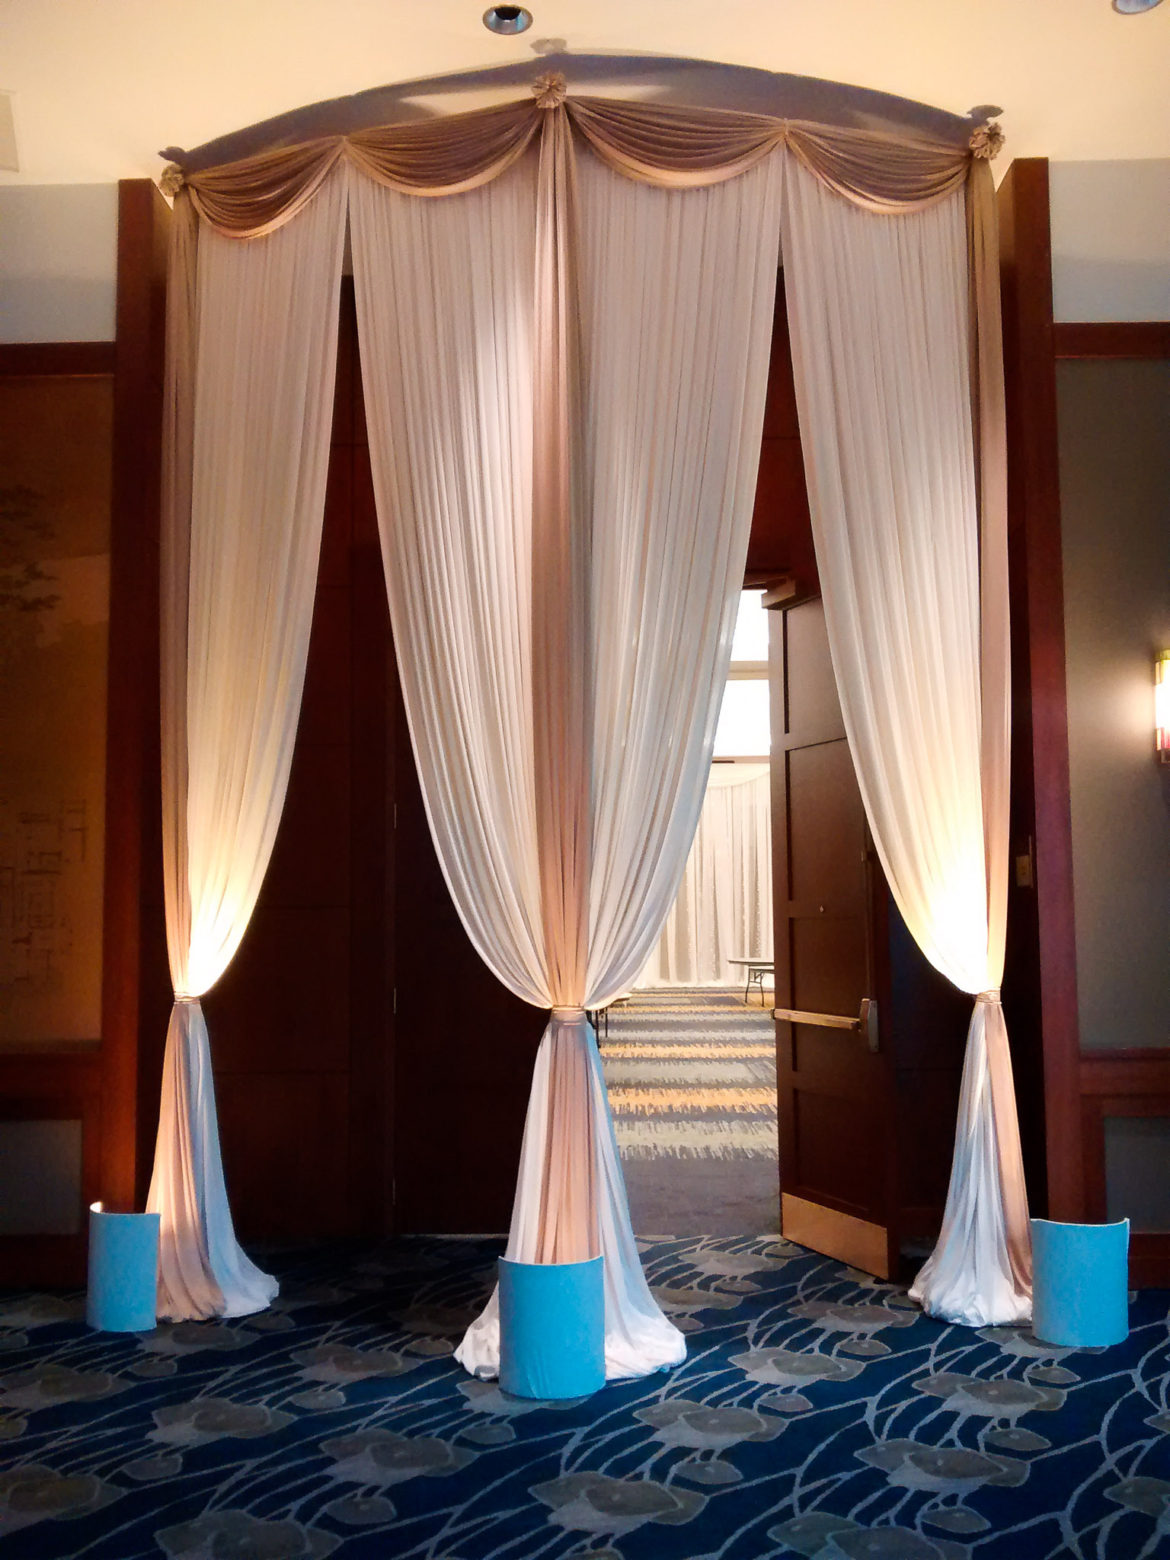 Elegant_Event_Lighting_Chicago_Eaglewood_Resort_Spa_Itasca_Wedding_Entrance_Draping_Ivory_Champagne